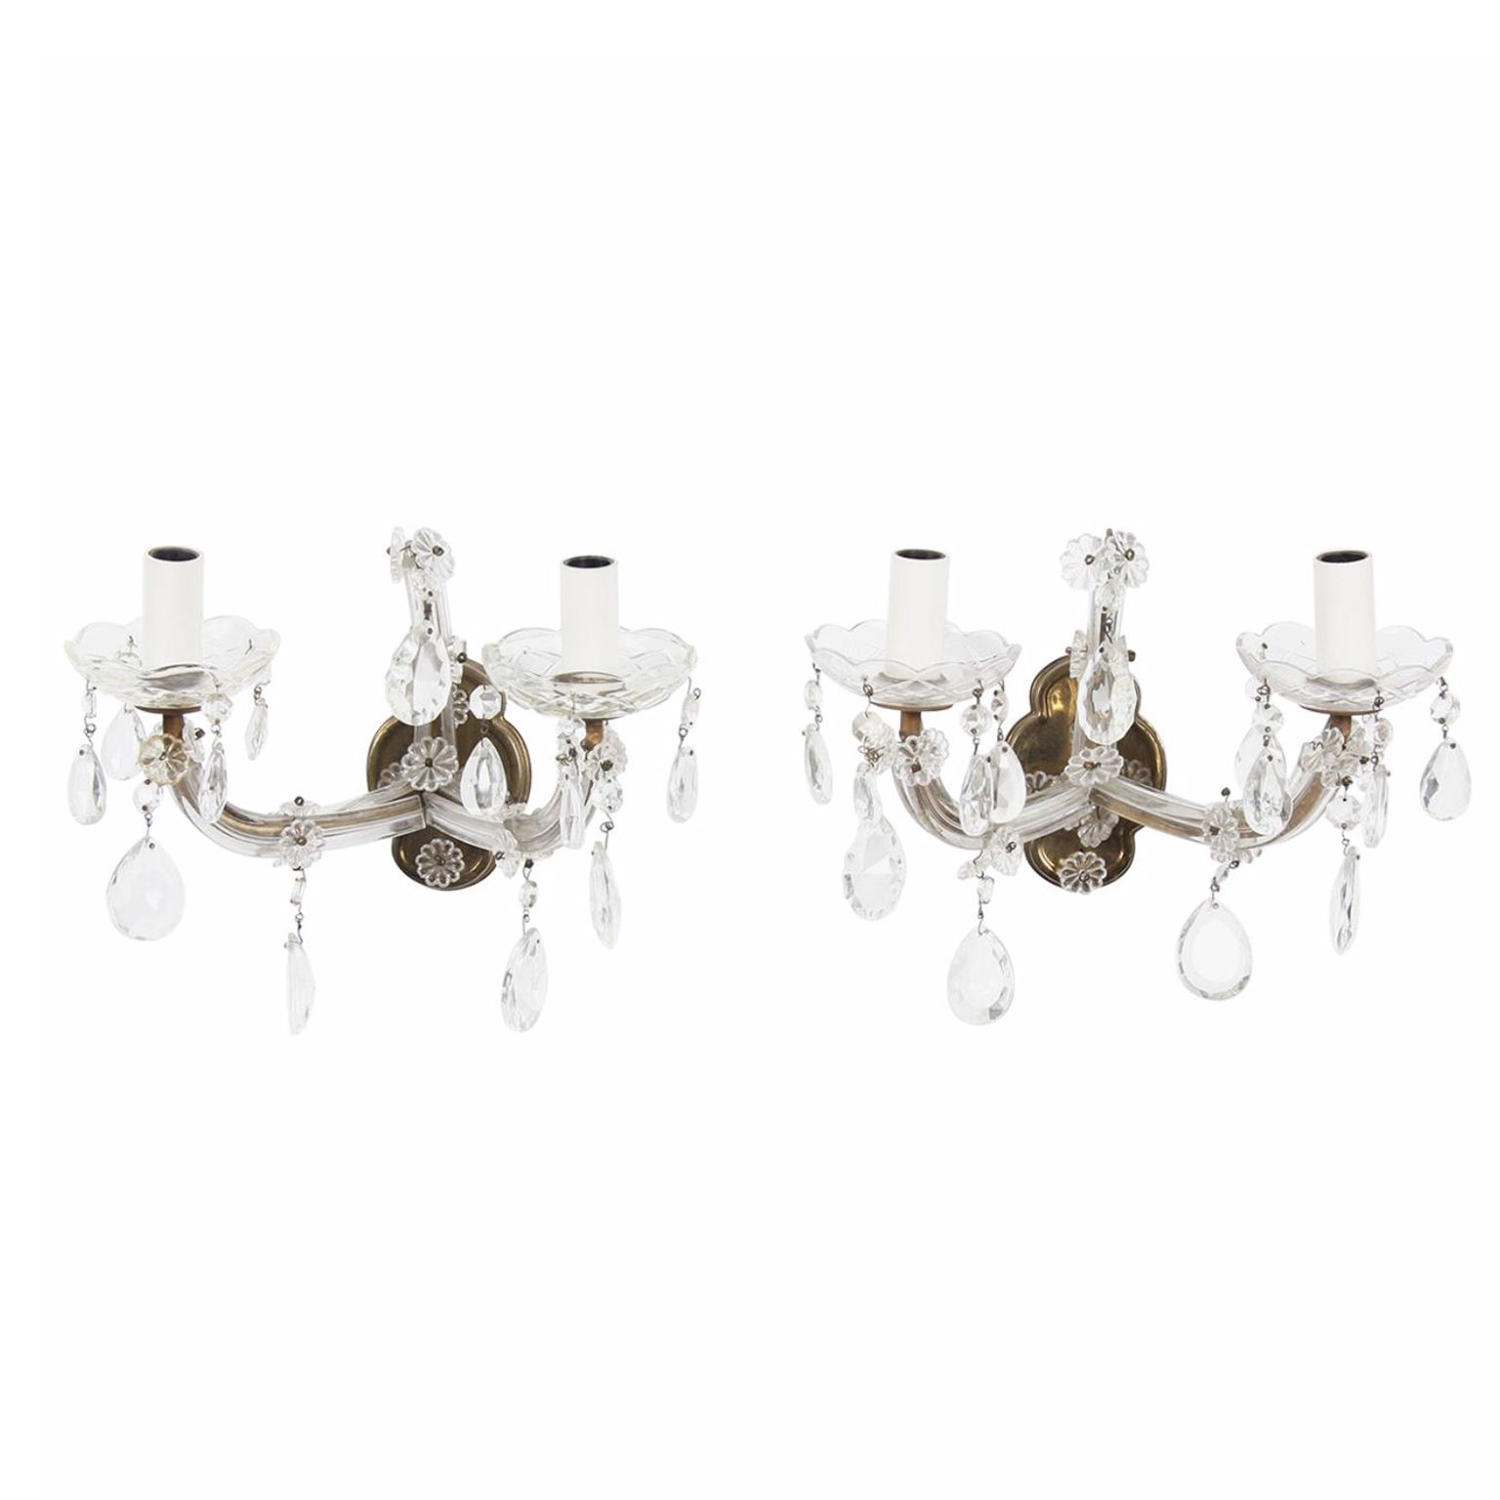 Pair of Marie Therese Style Wall Sconces